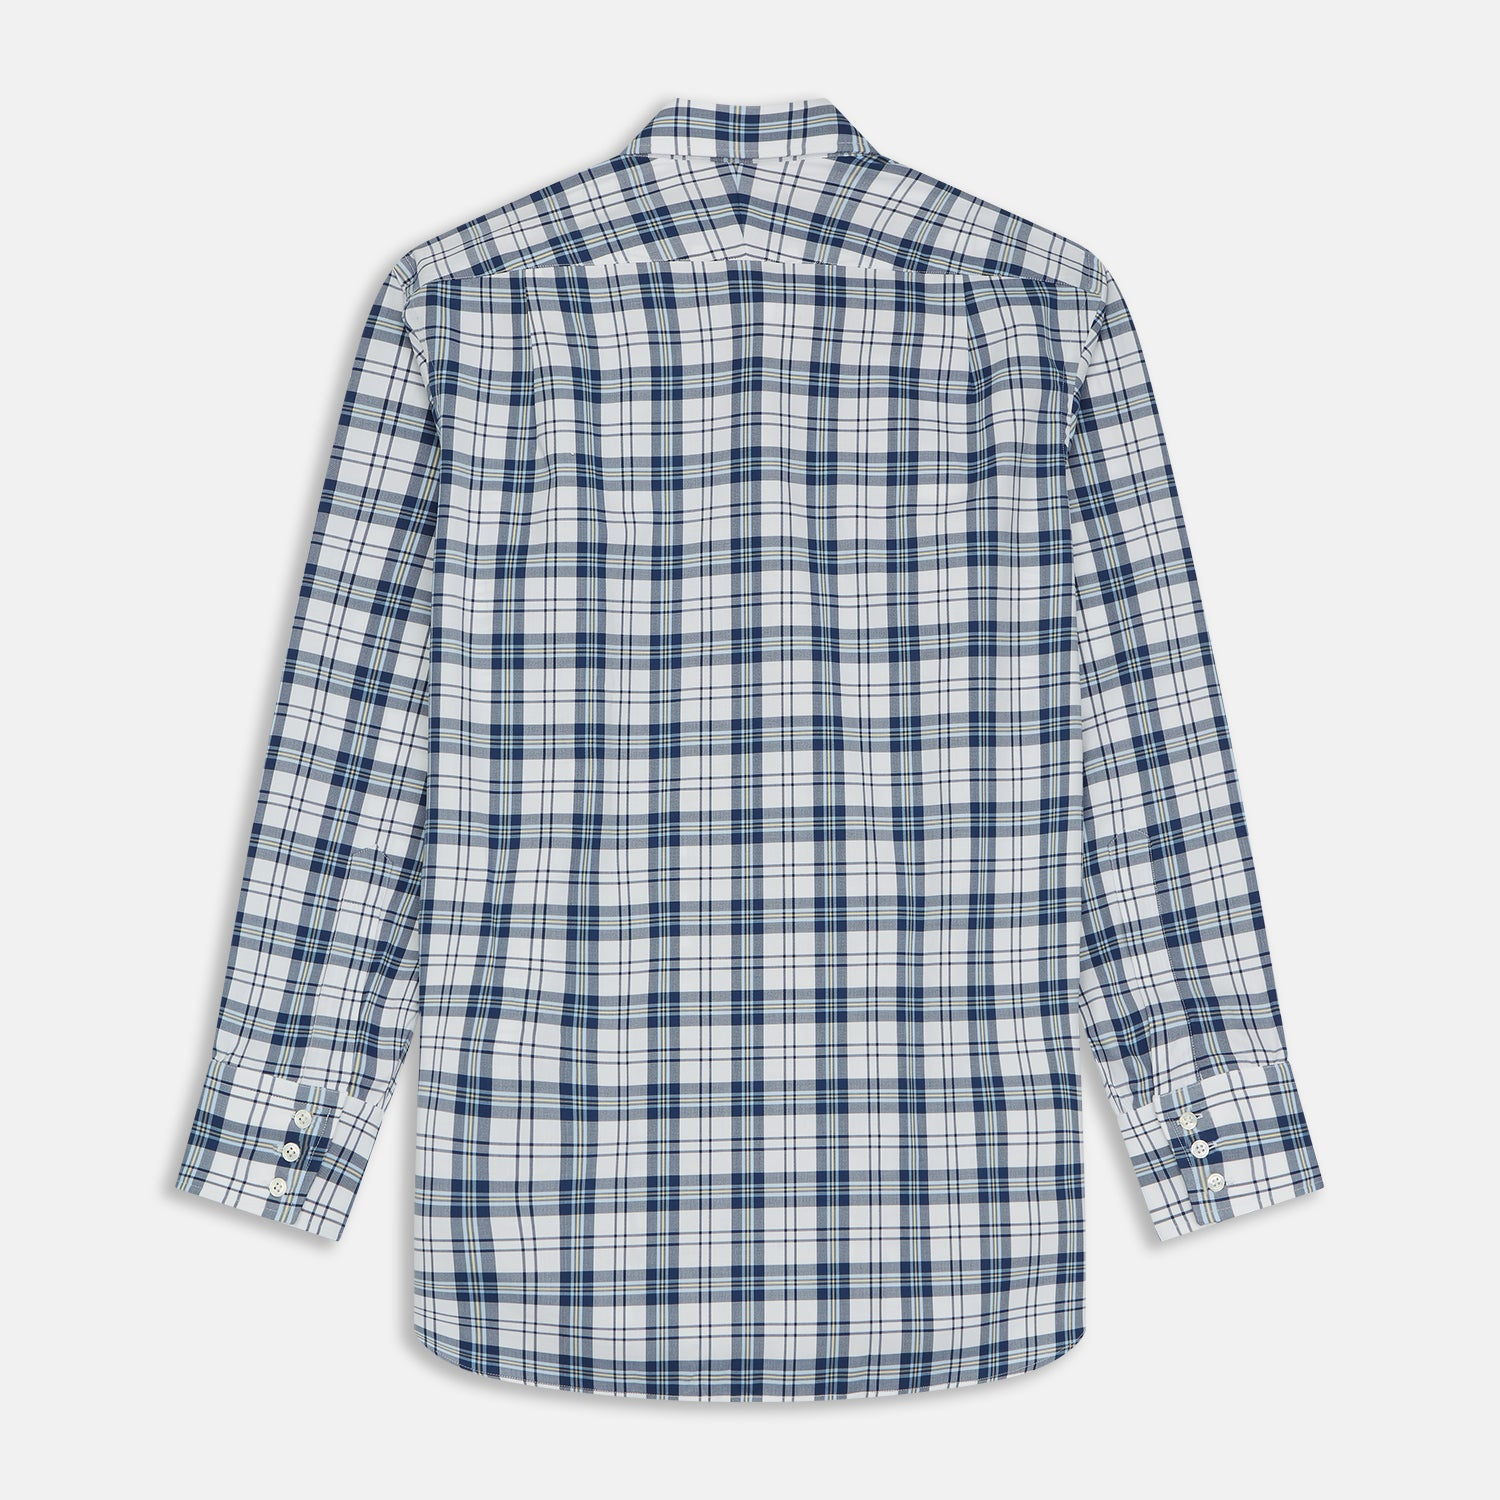 Blue Check Shirt with T&A Collar and 3-Button Cuffs